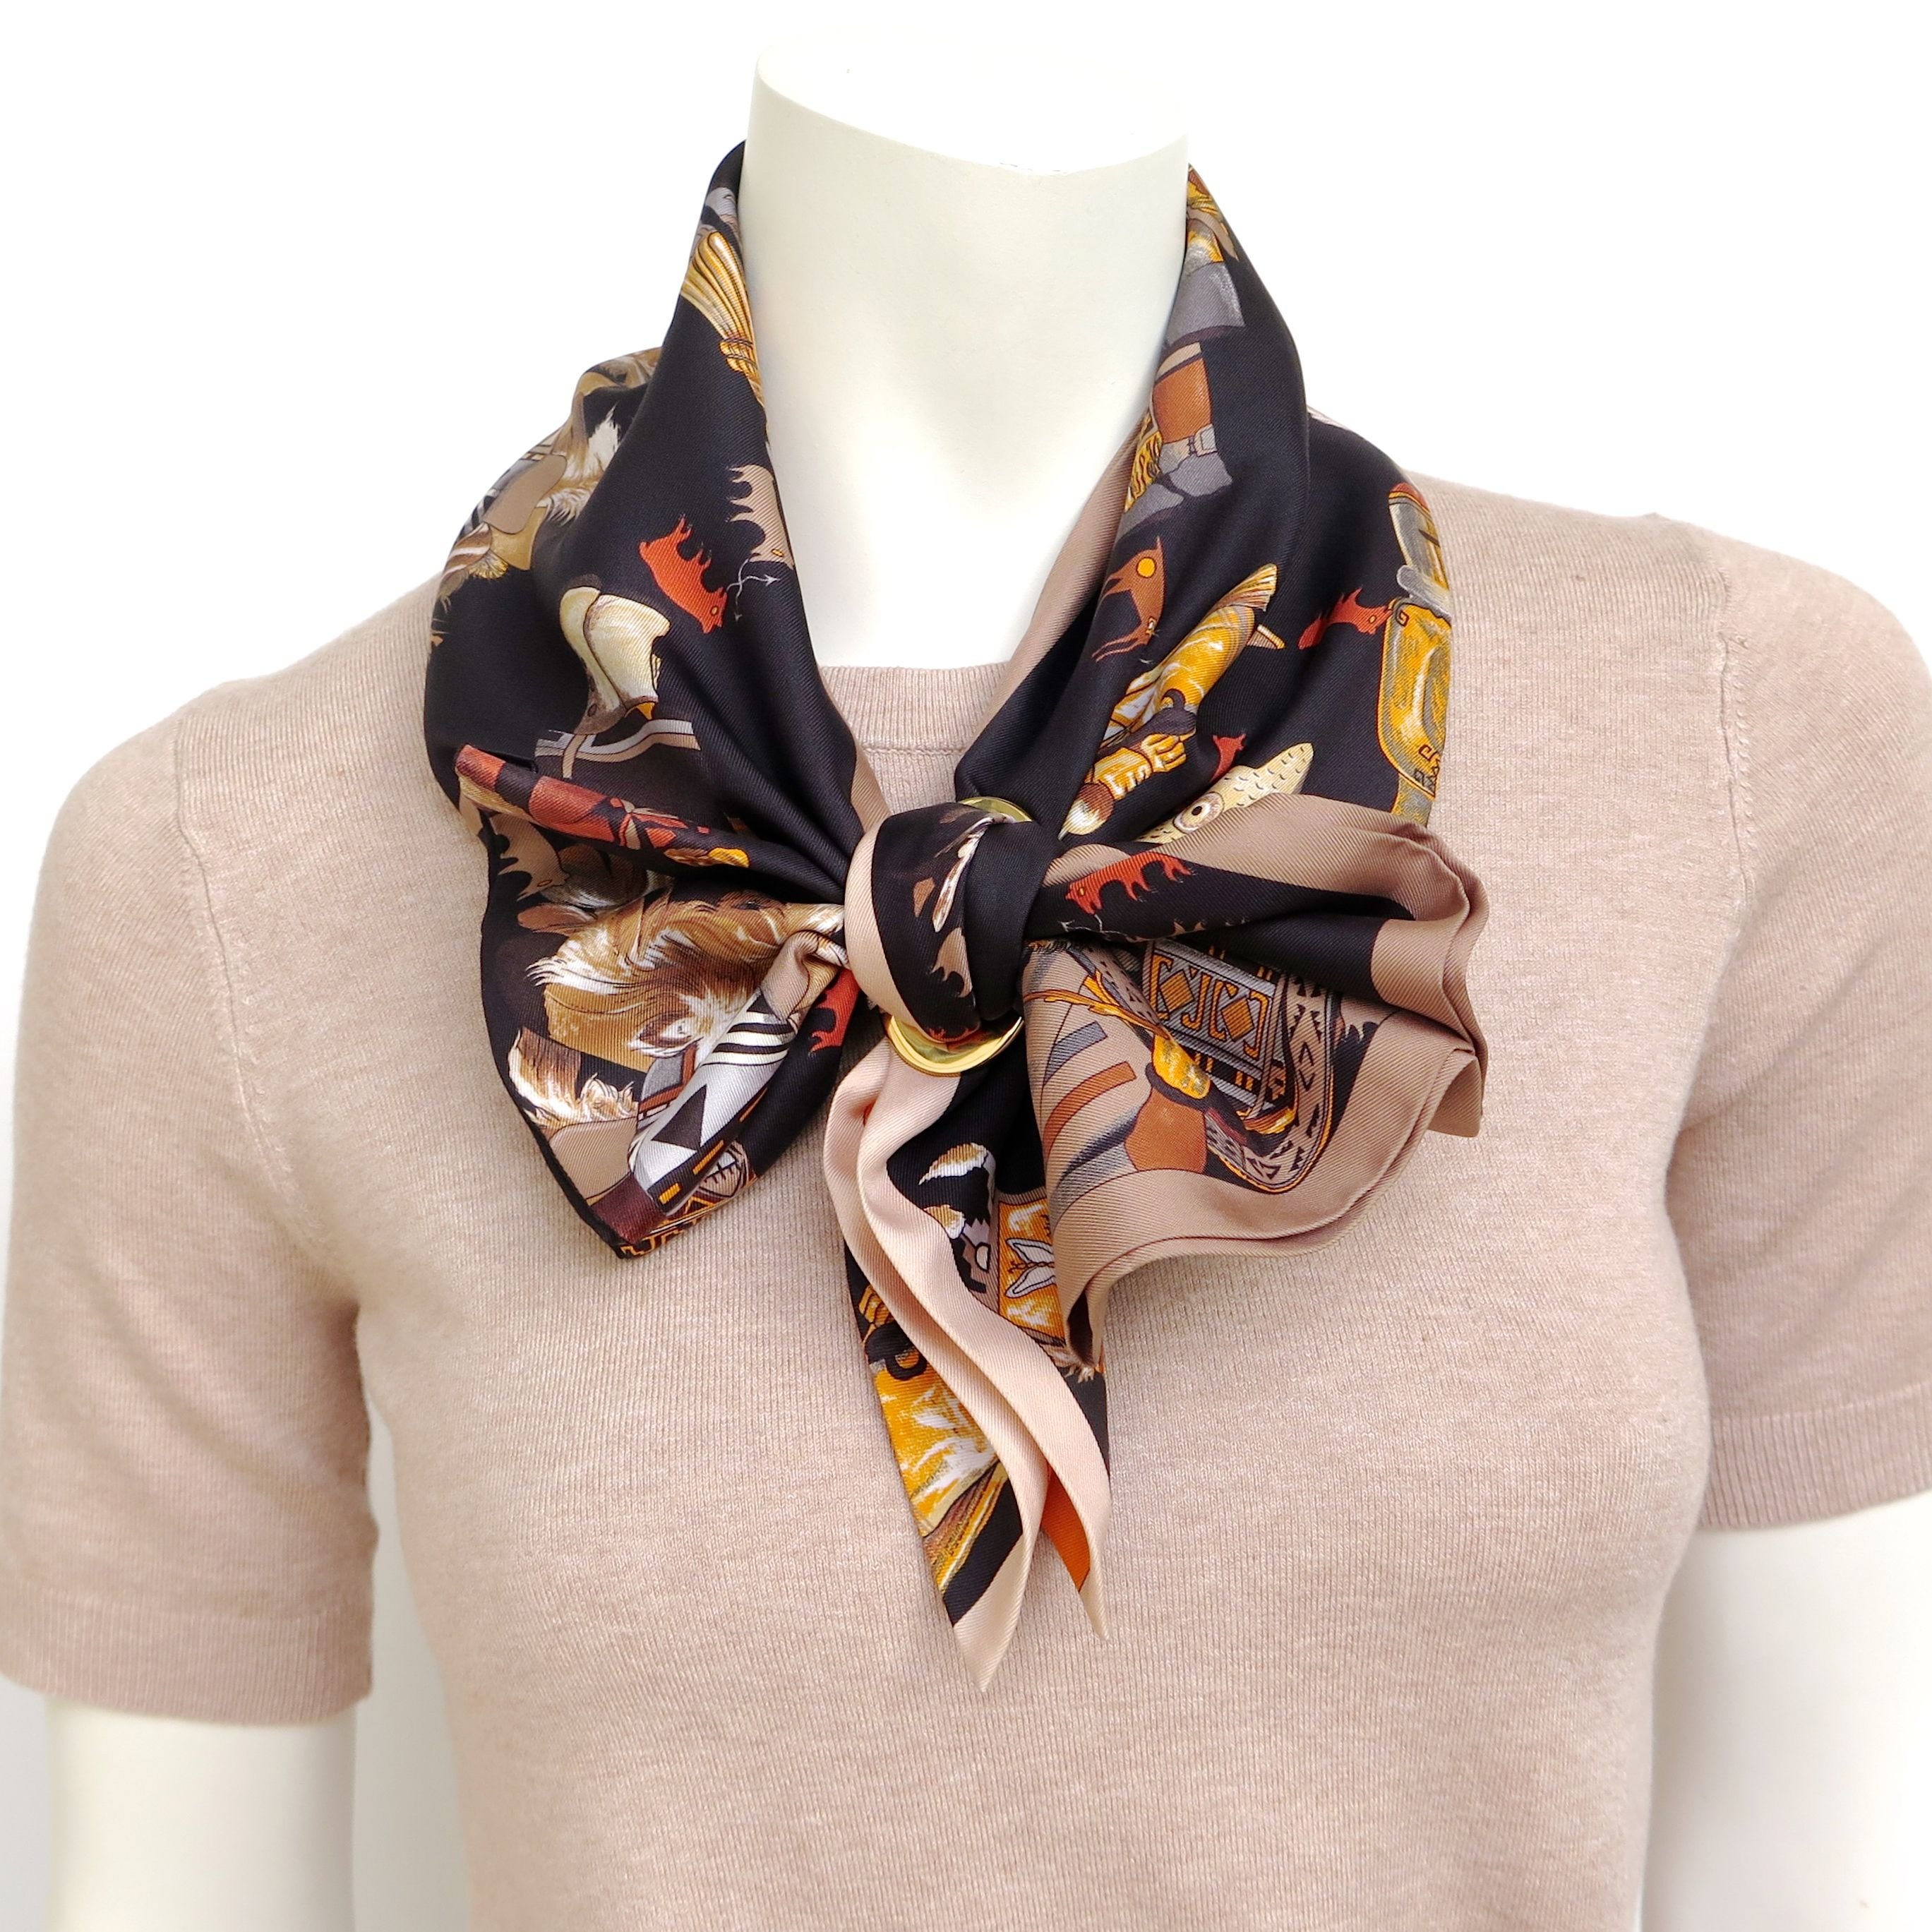 Volant knot in 2020 Scarf, Scarf knots, Twilly scarf